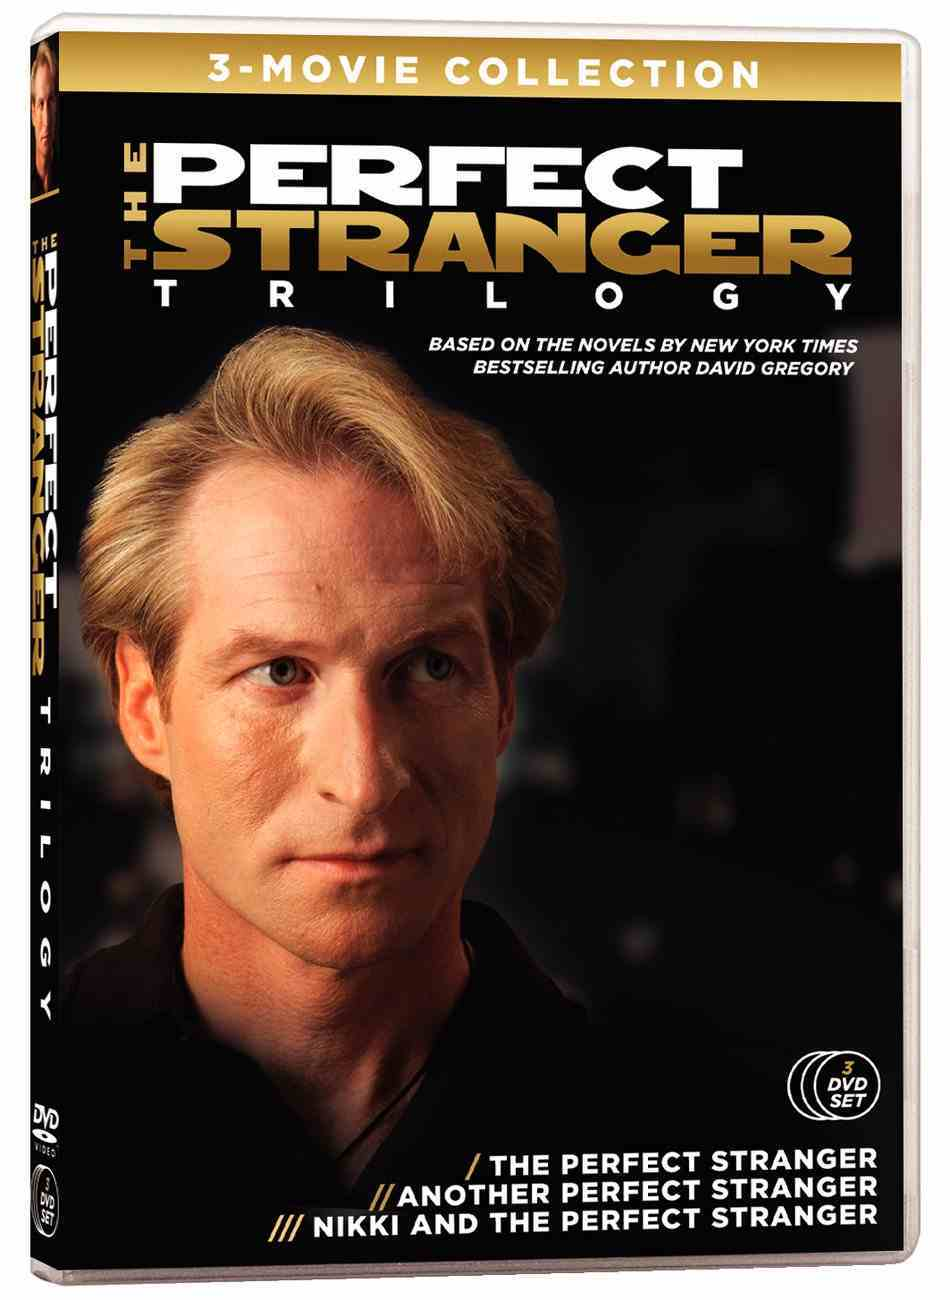 The Perfect Stranger Trilogy (3-movie Collection) DVD